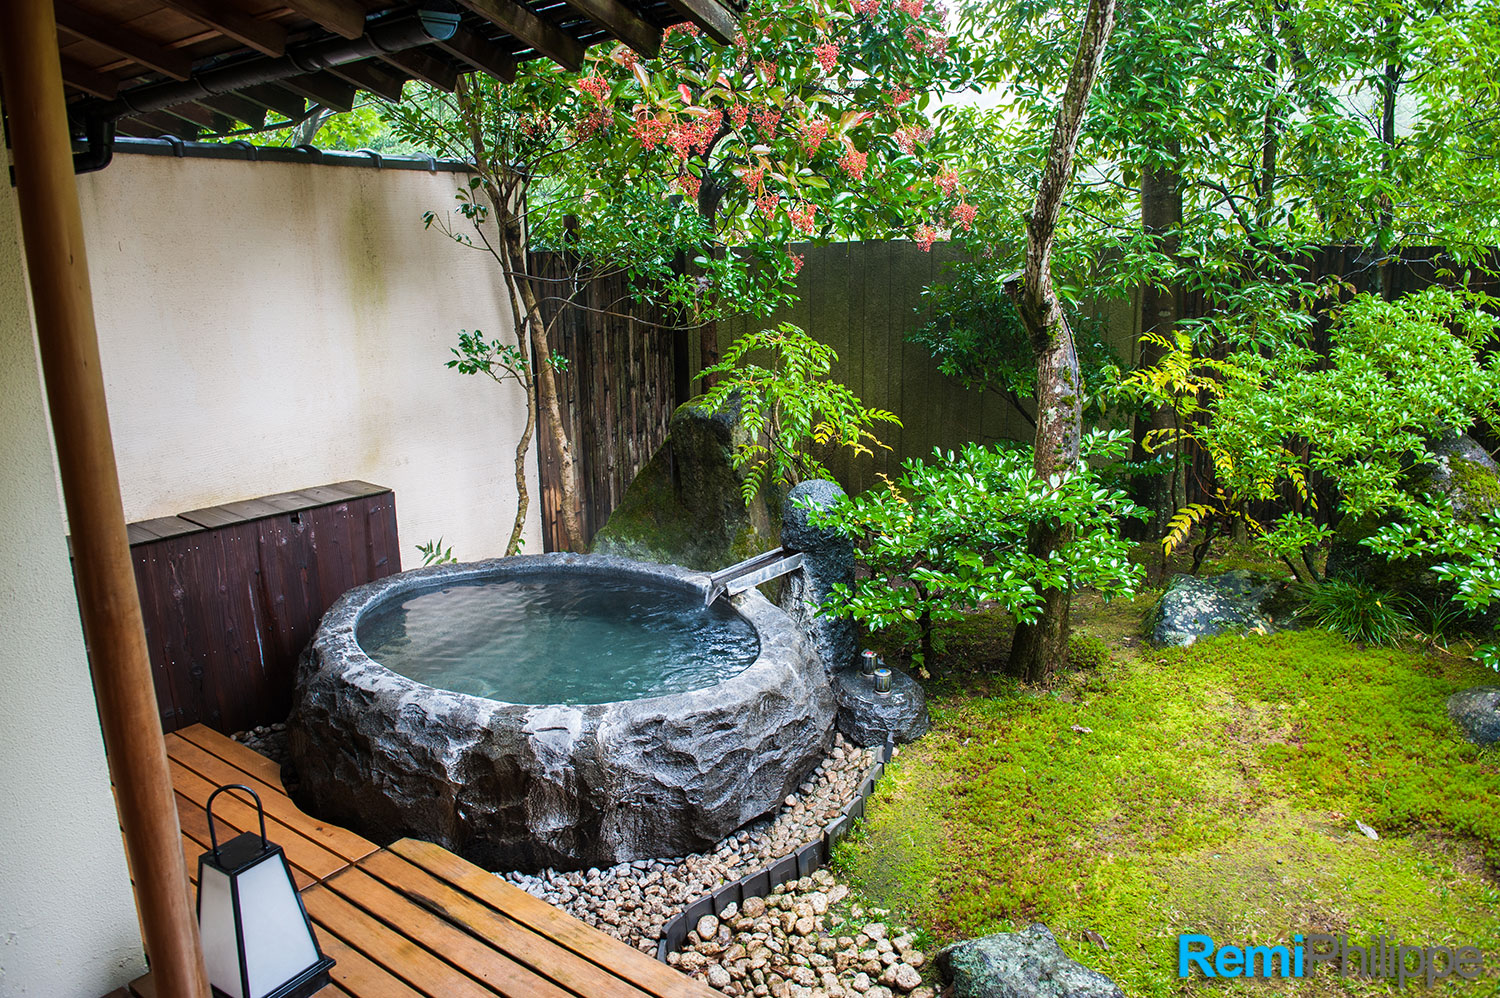 Awesome Mini Bassin Jardin Japonais Pictures - Awesome Interior ...